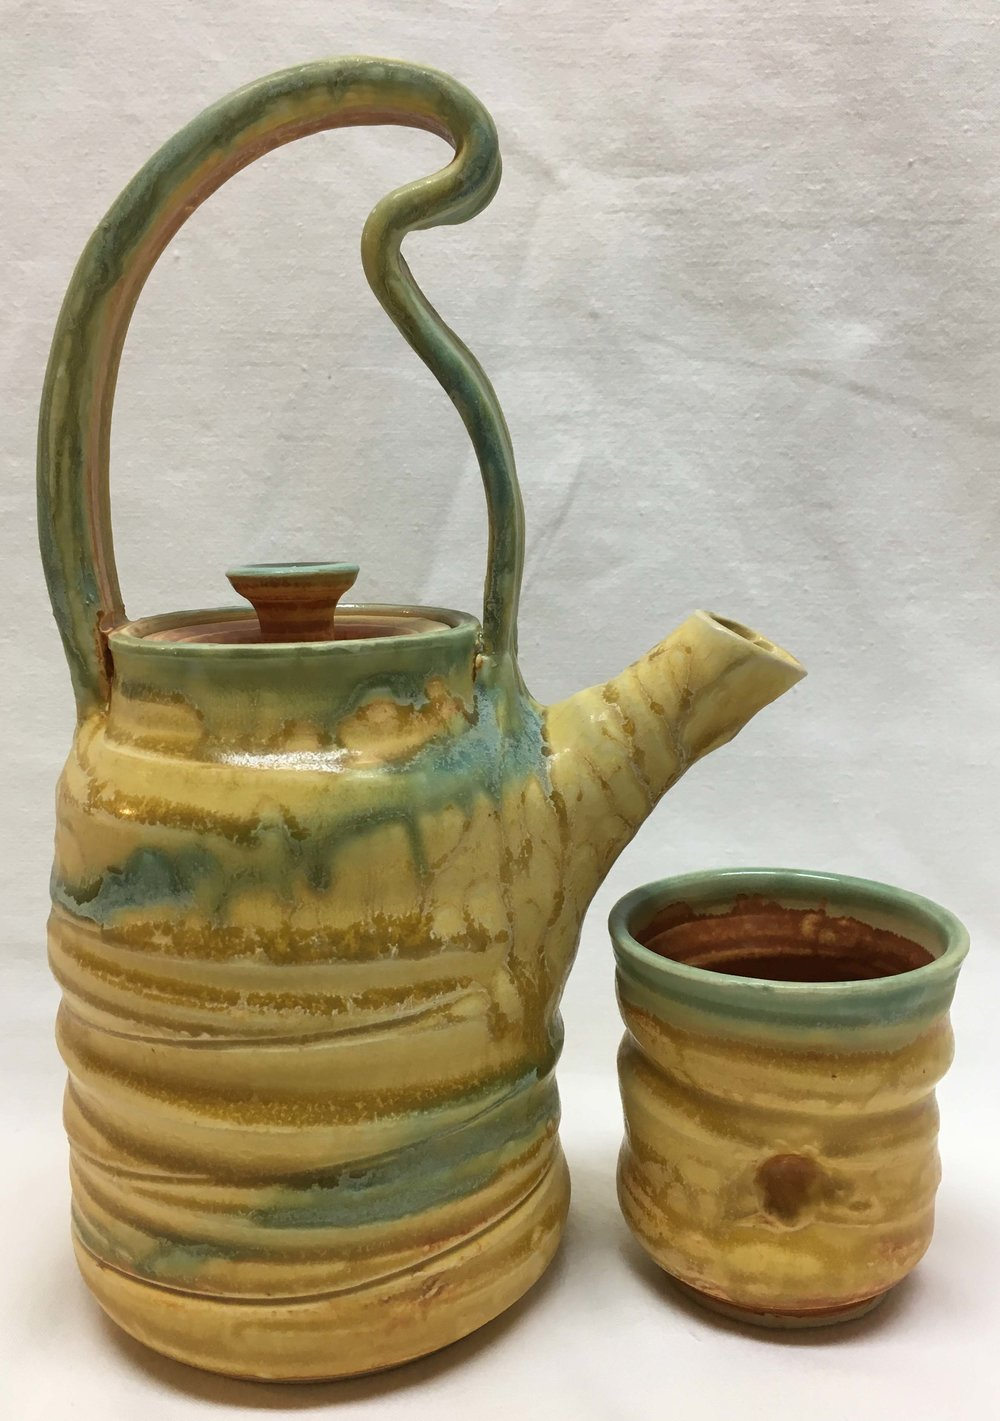 Quirky Teapot and Cup - Deborah Wheeler